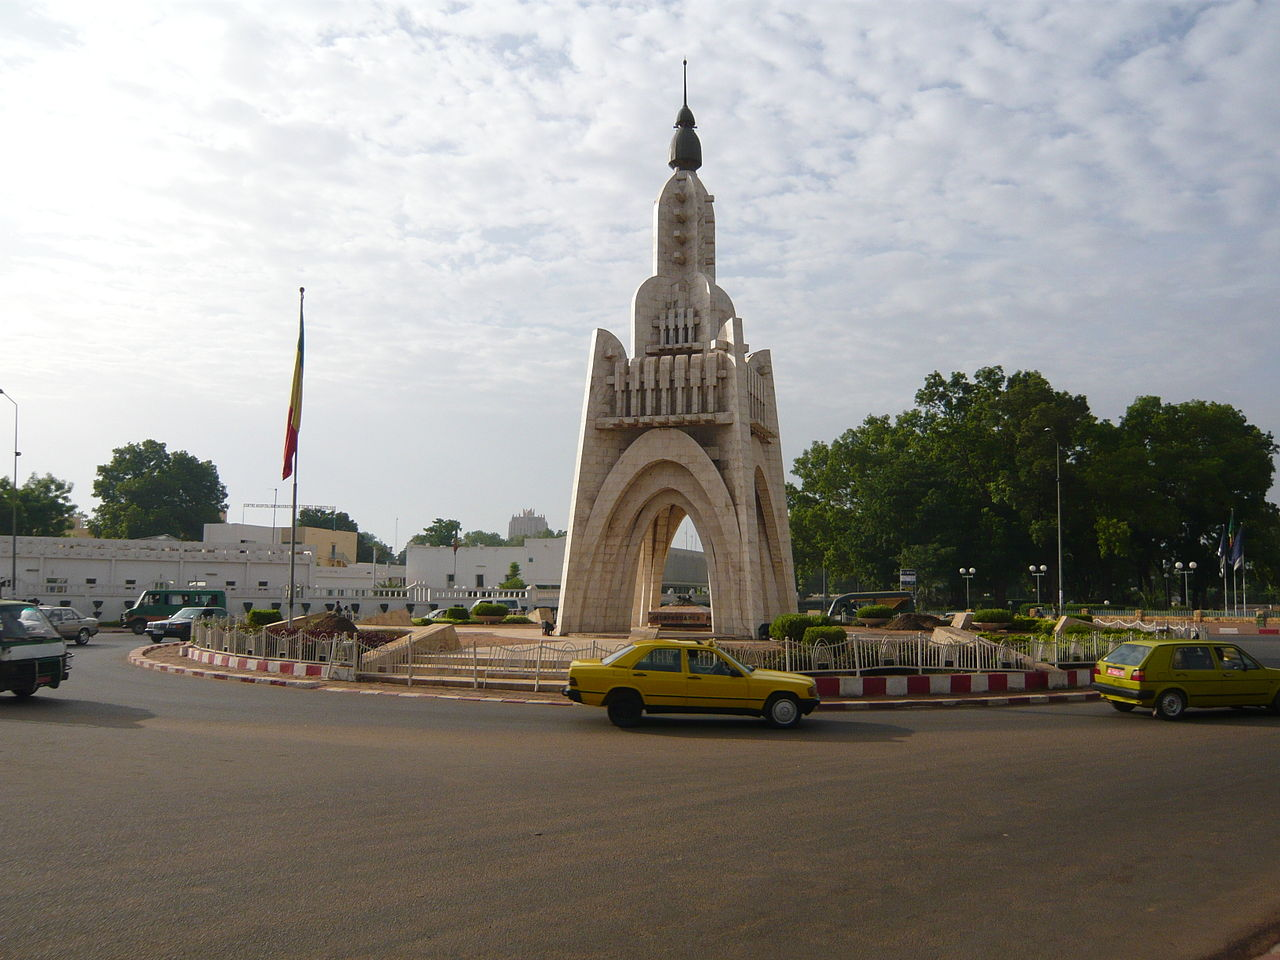 A monument commemorating Mali's independence from France